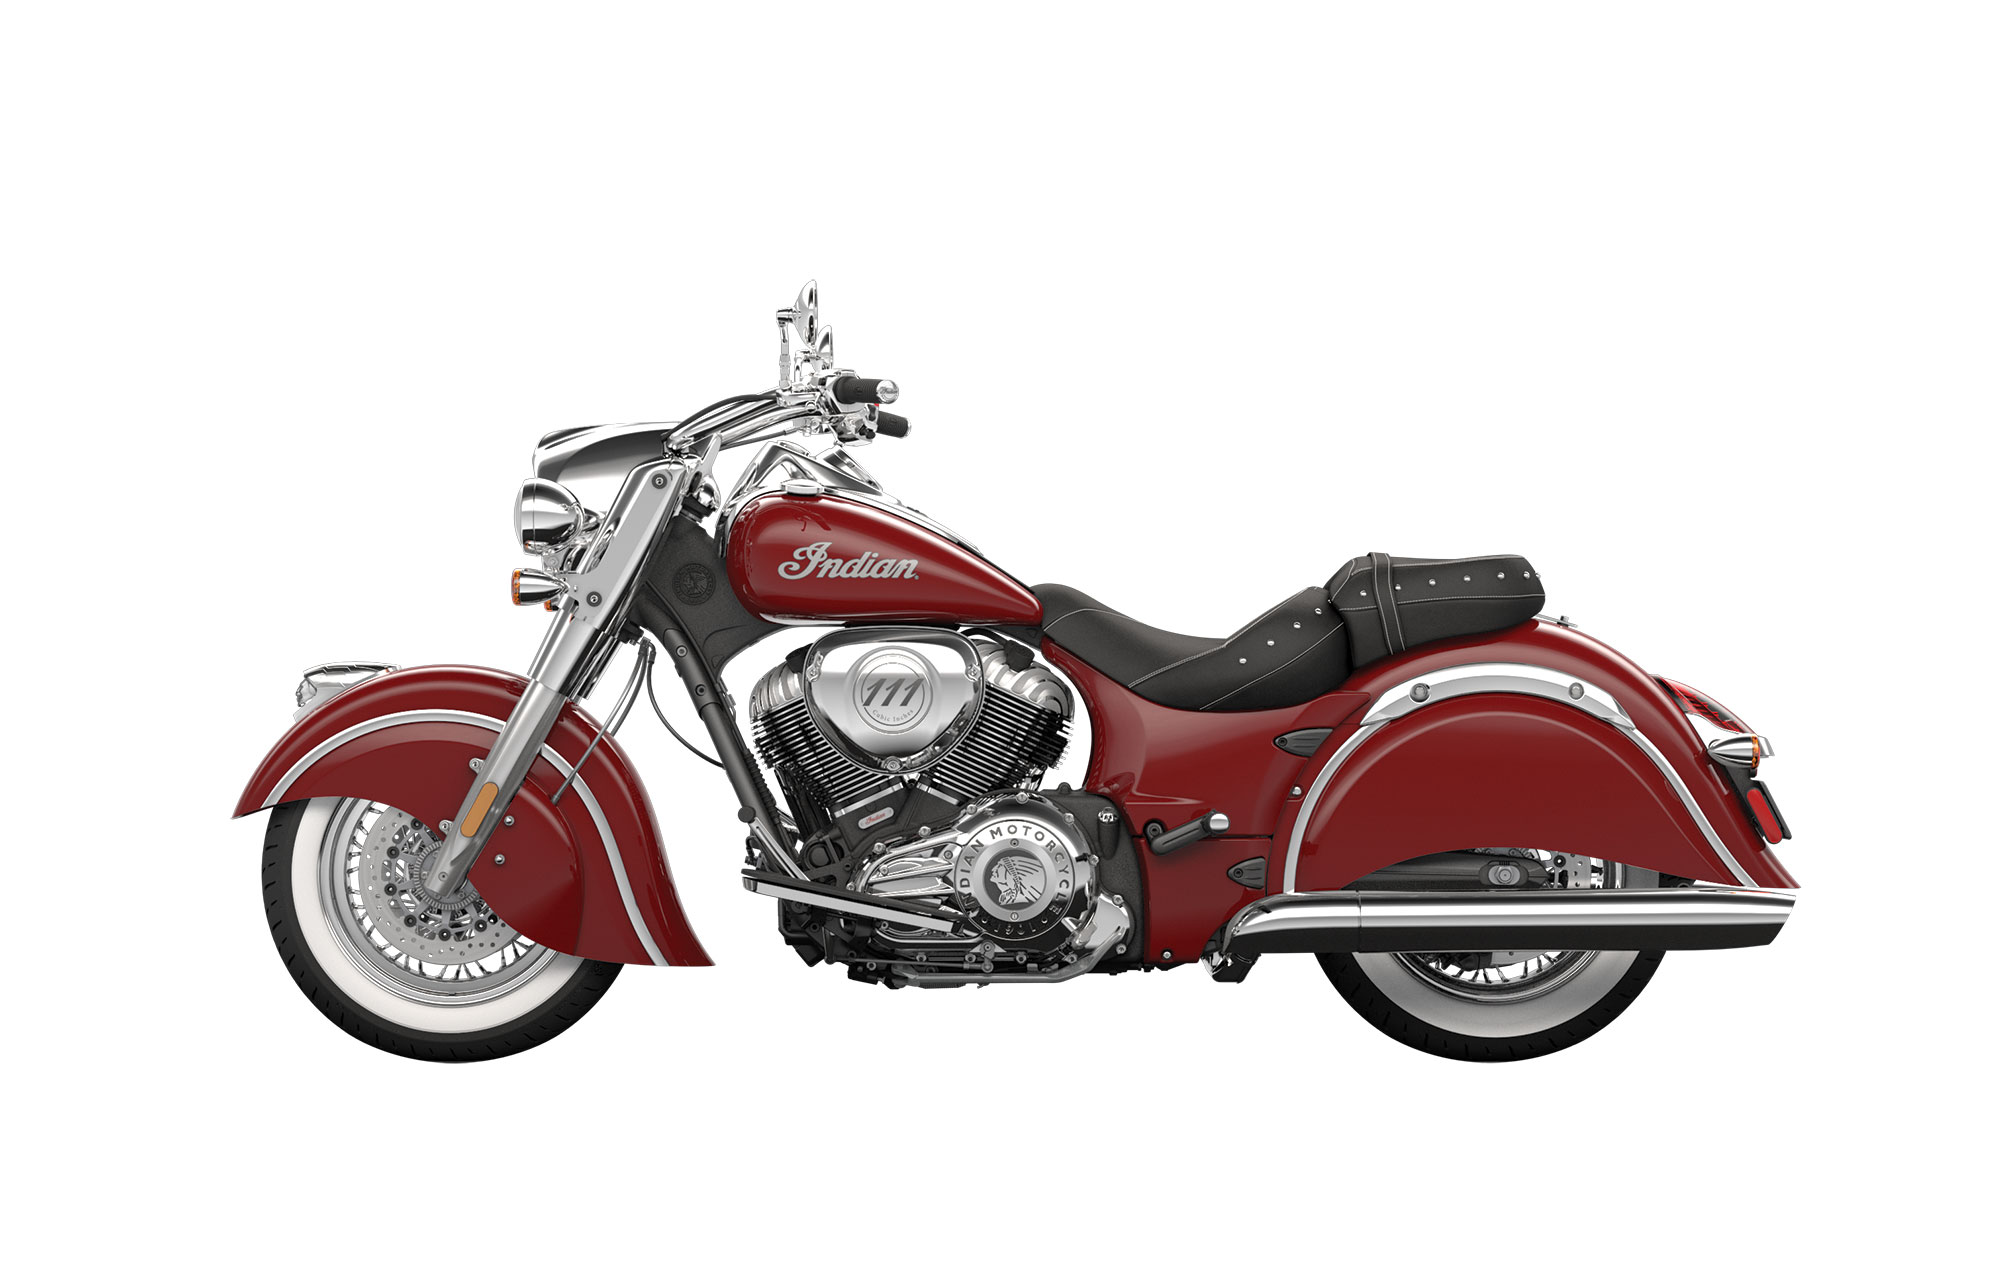 2014 Indian Chief Motorcycle